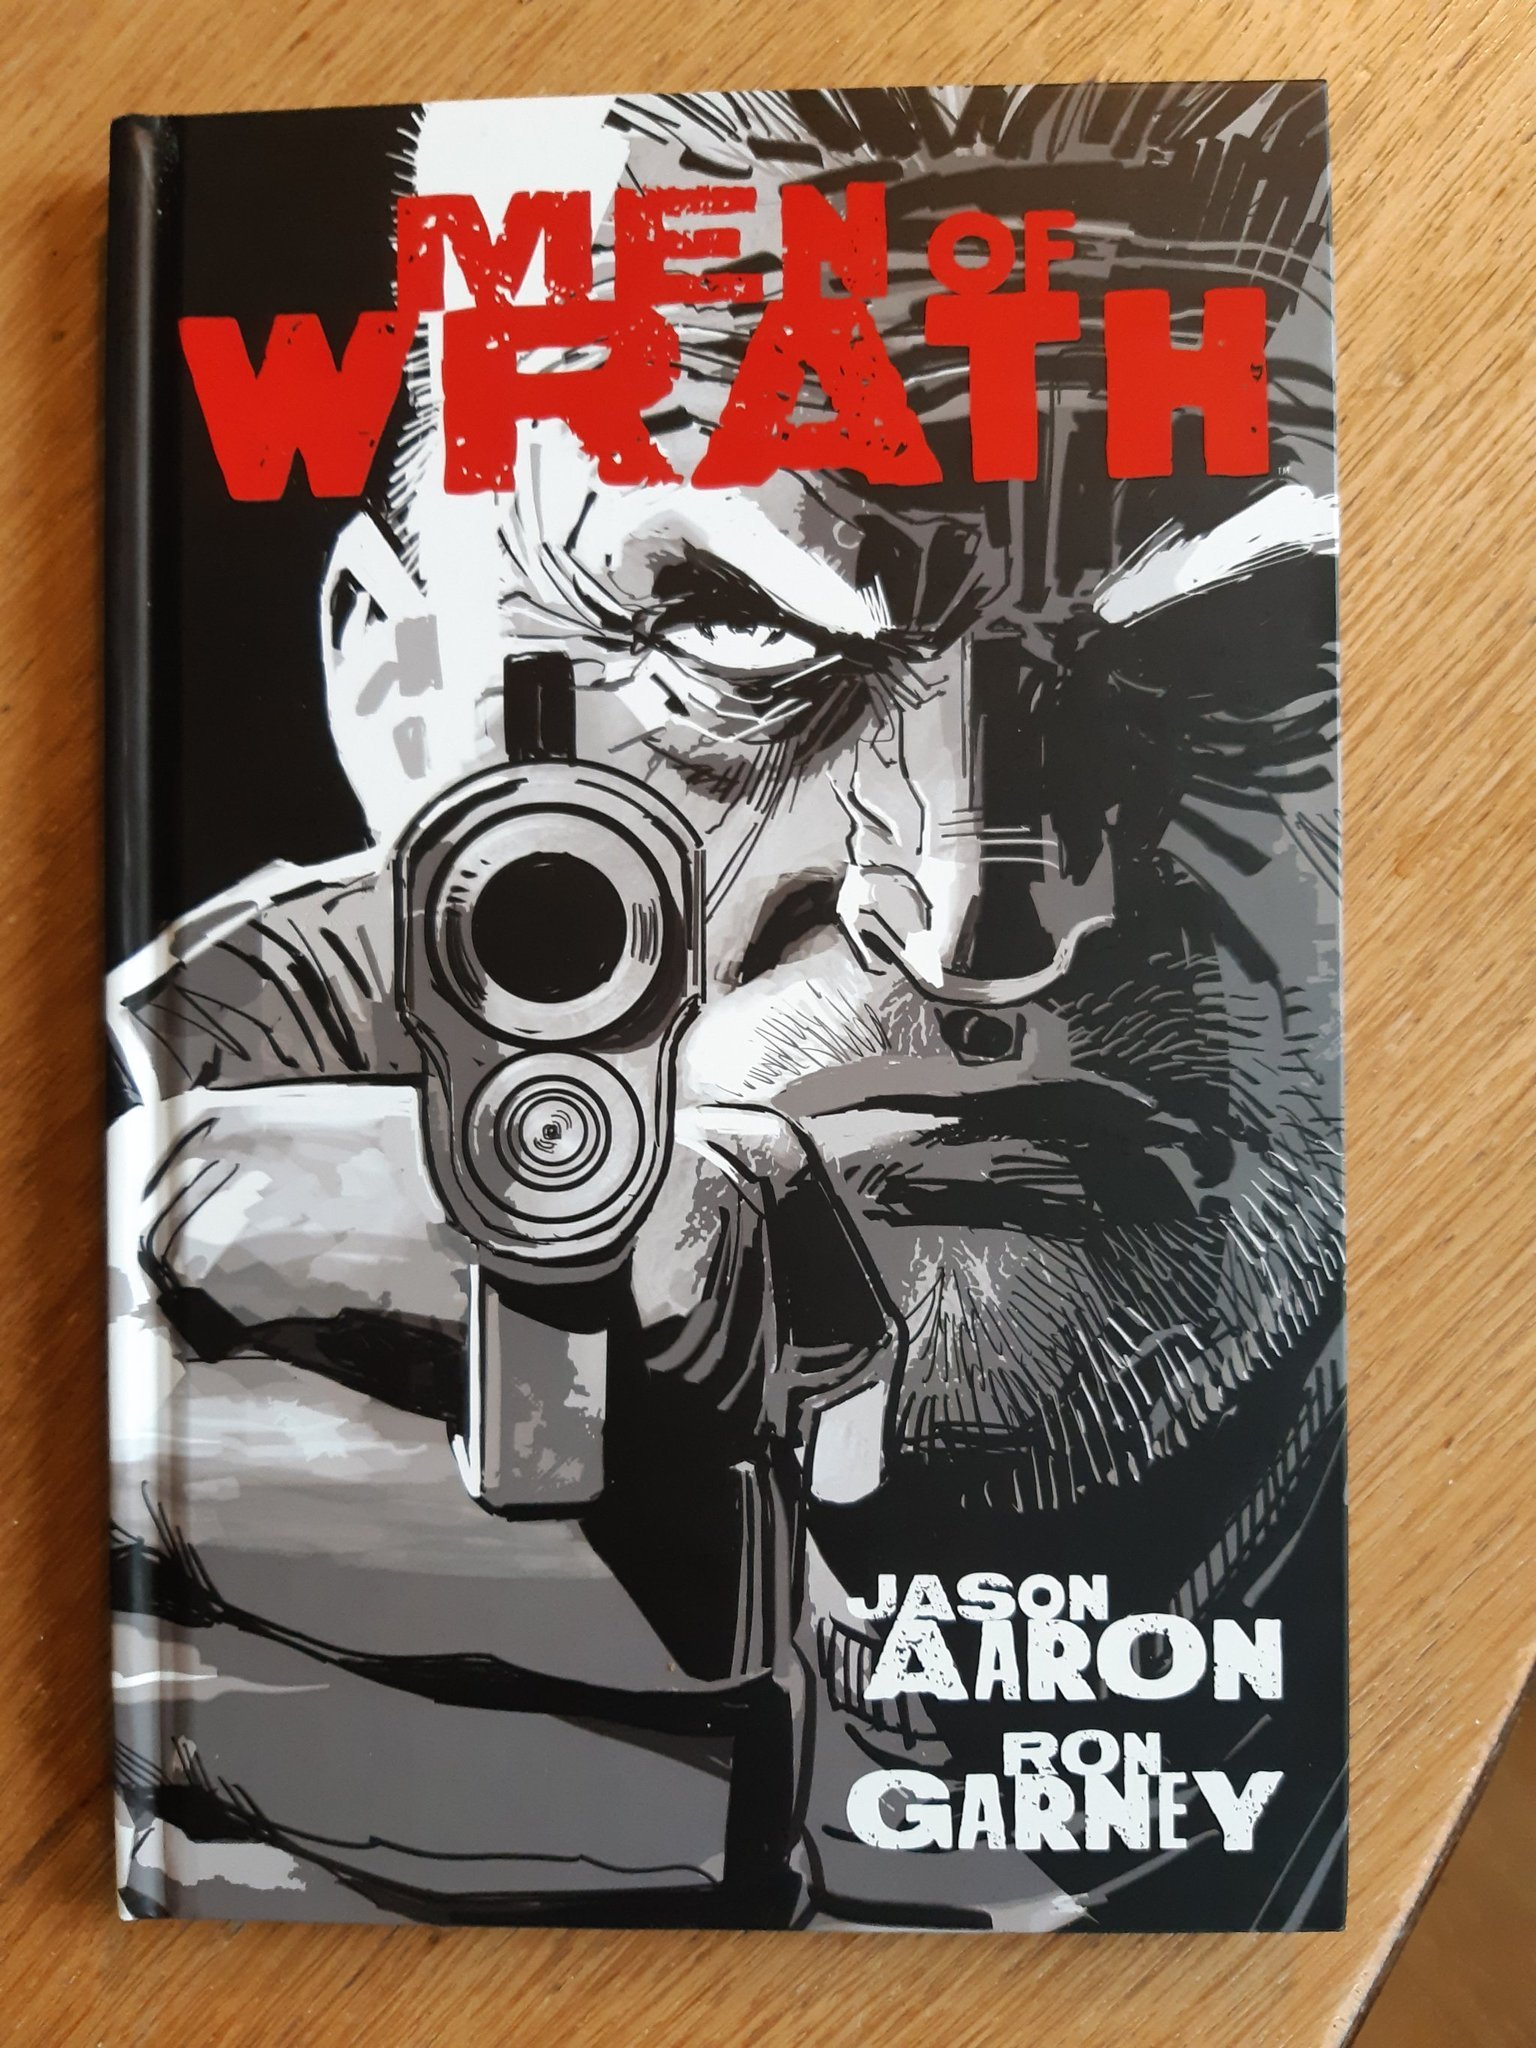 Men of wrath. Jason Aaron